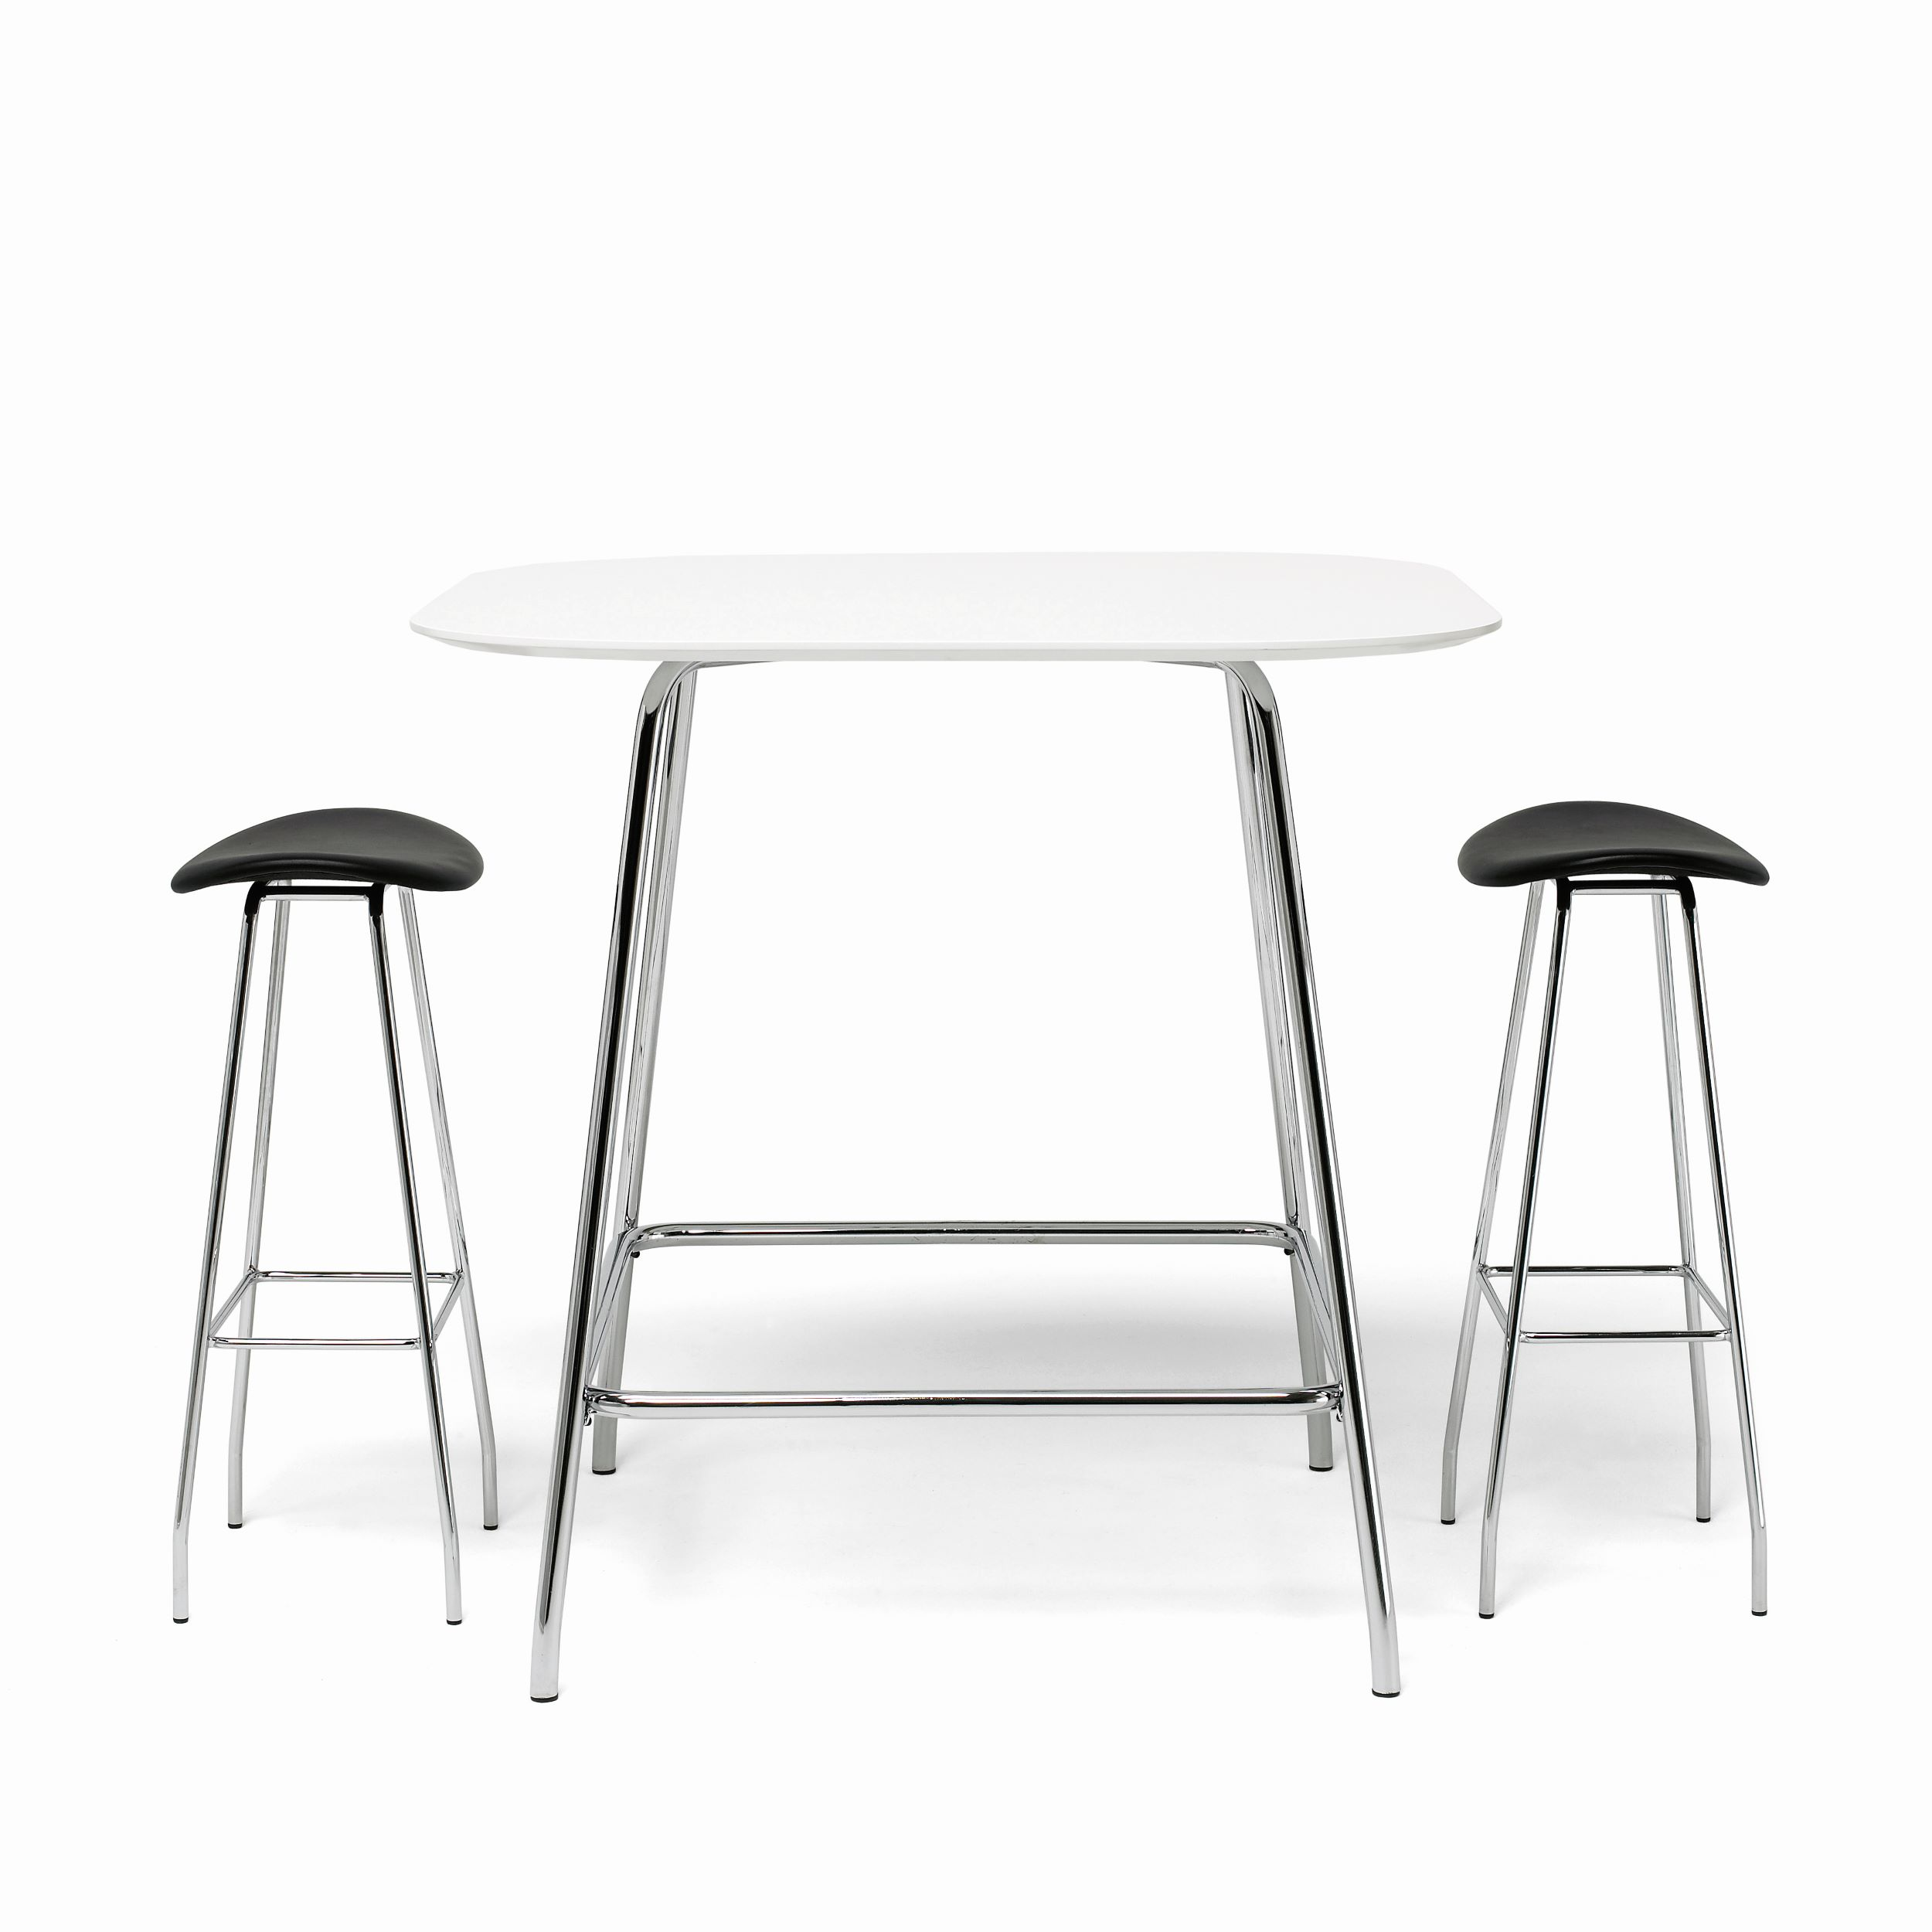 room tables varnished basefurniture table bistro and black stools for perky set encouragement with size style wooden kitchen wa bar pub full stool styletable using dark